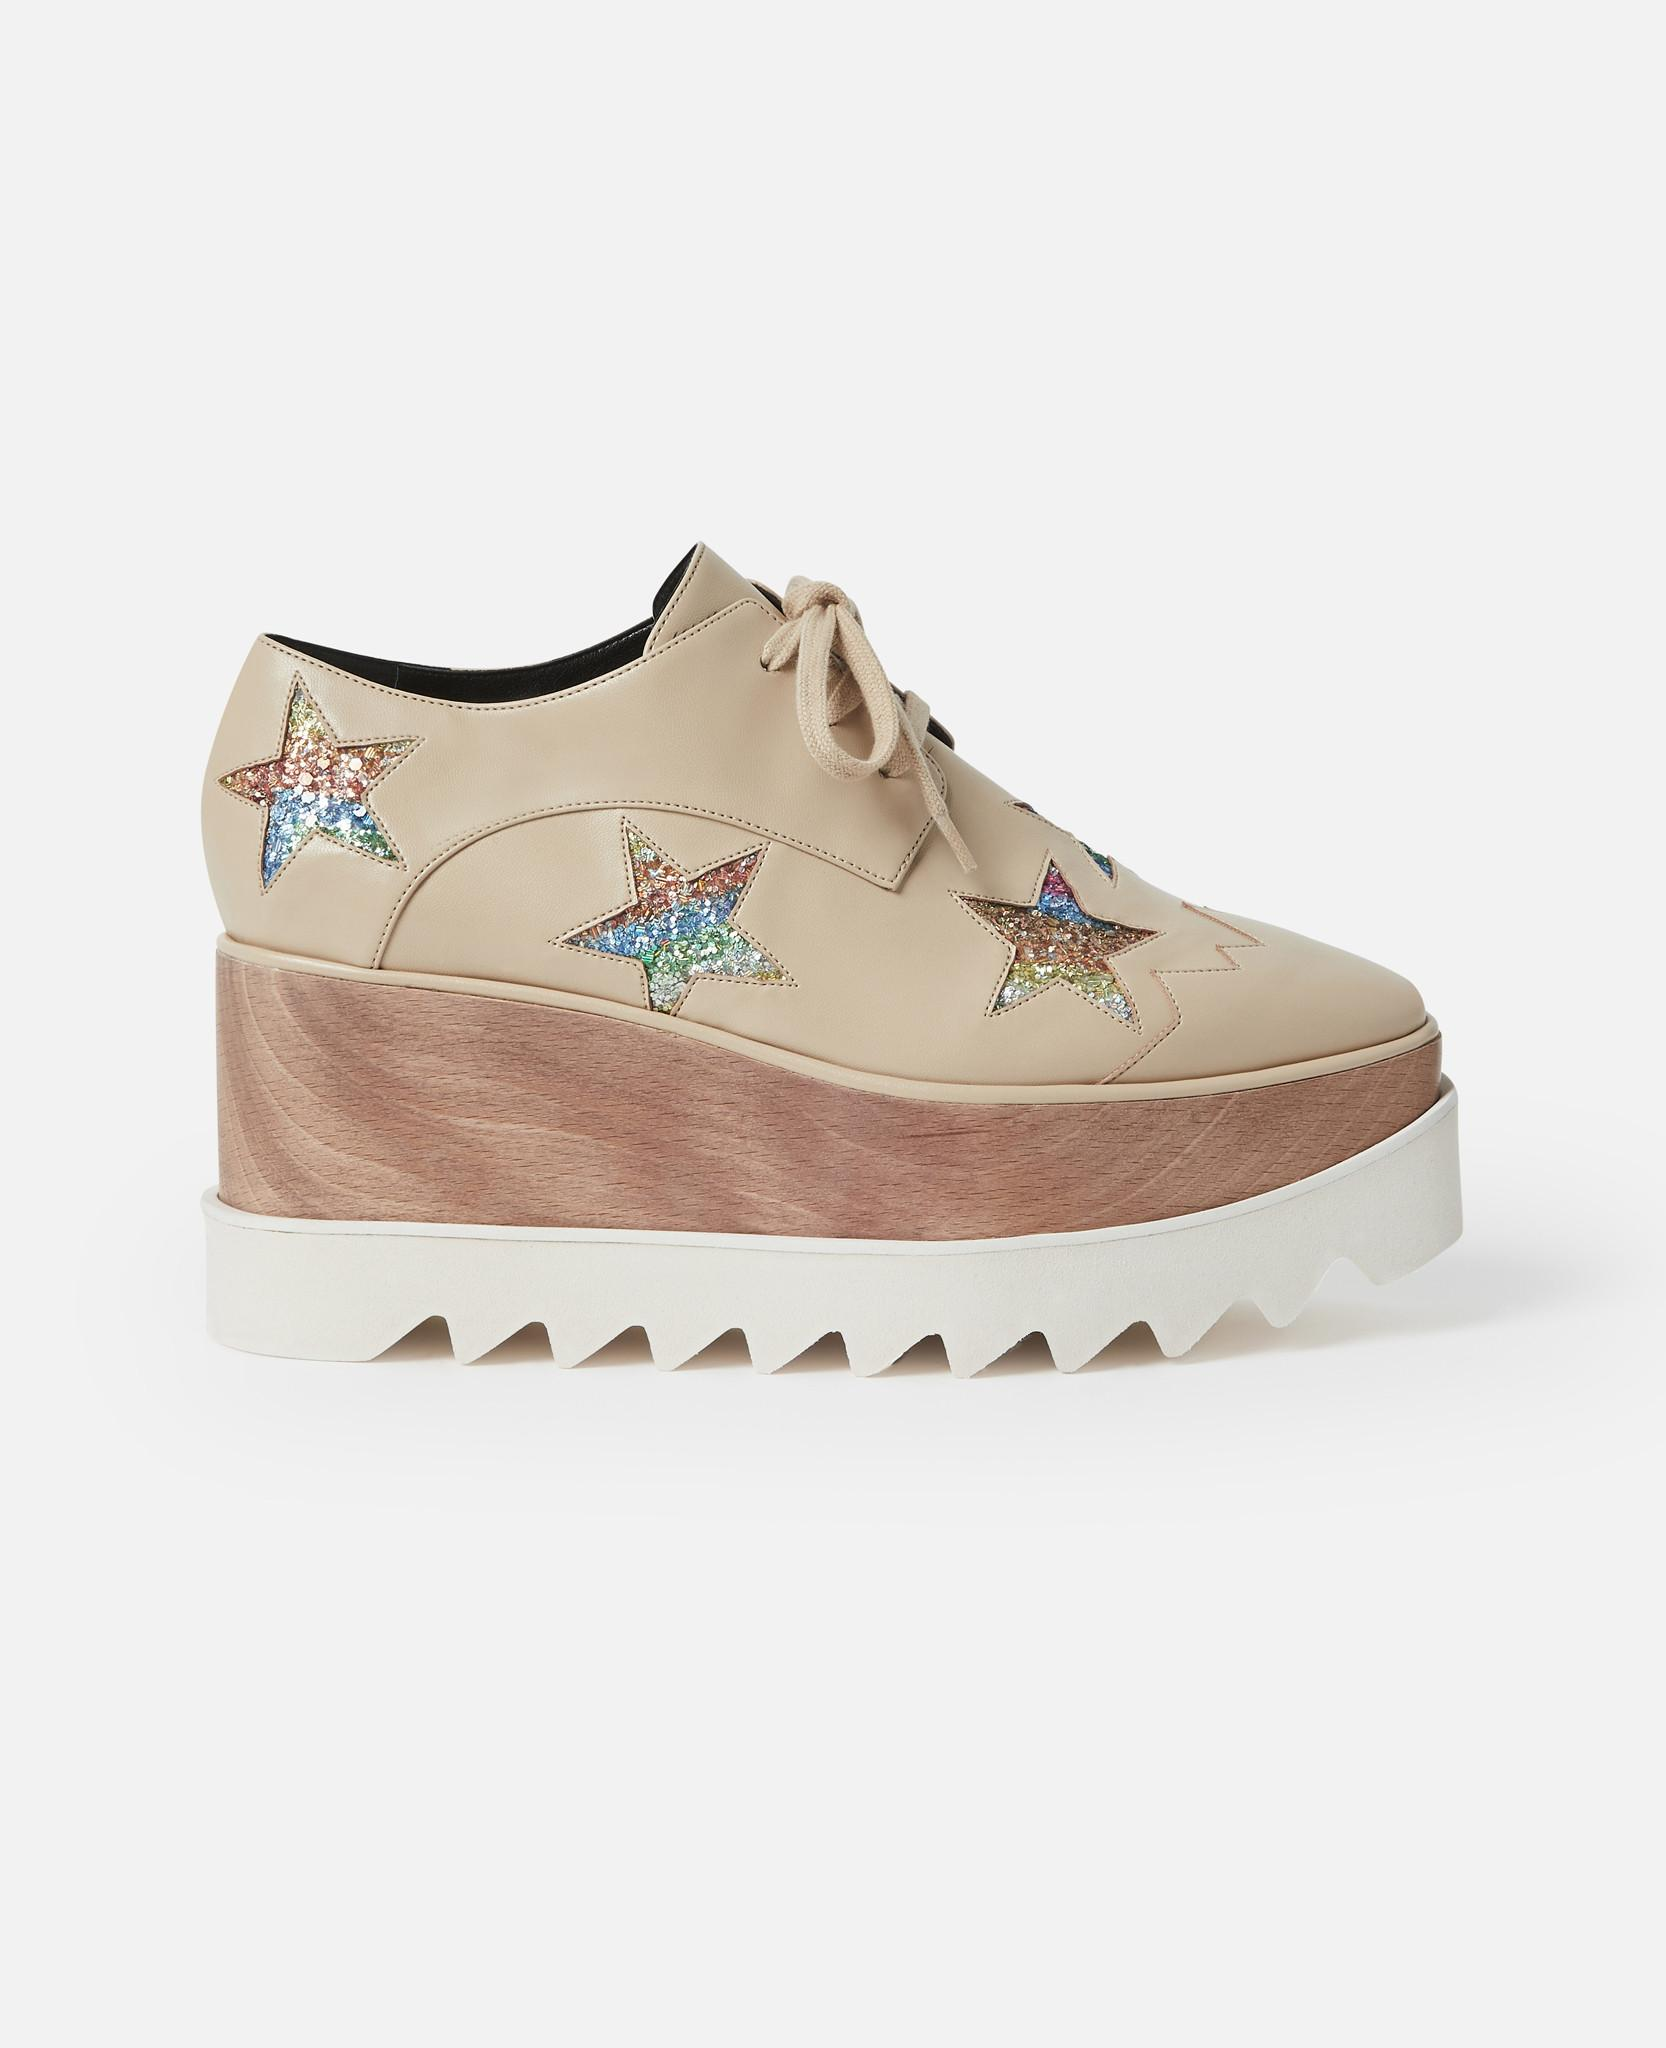 19f73552a14 Lyst - Stella McCartney Elyse Beige Shoes in Natural